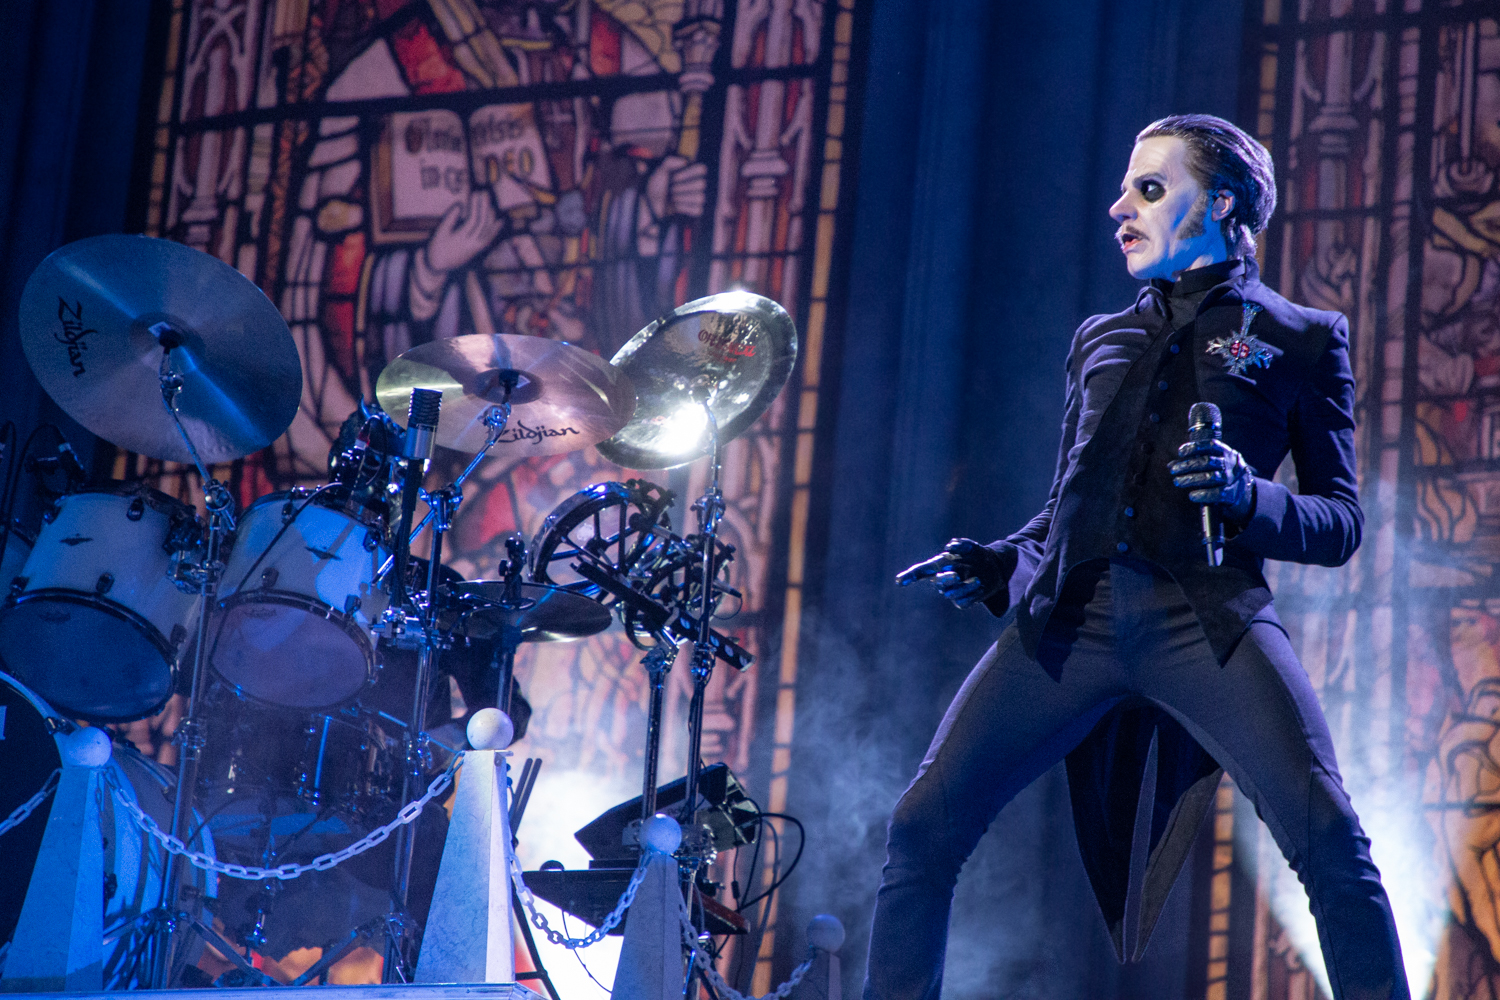 Ghost Barclays Center 2018 9 Live Review: Ghost Turn Brooklyns Barclays Center Into a House of Worship (12/15)